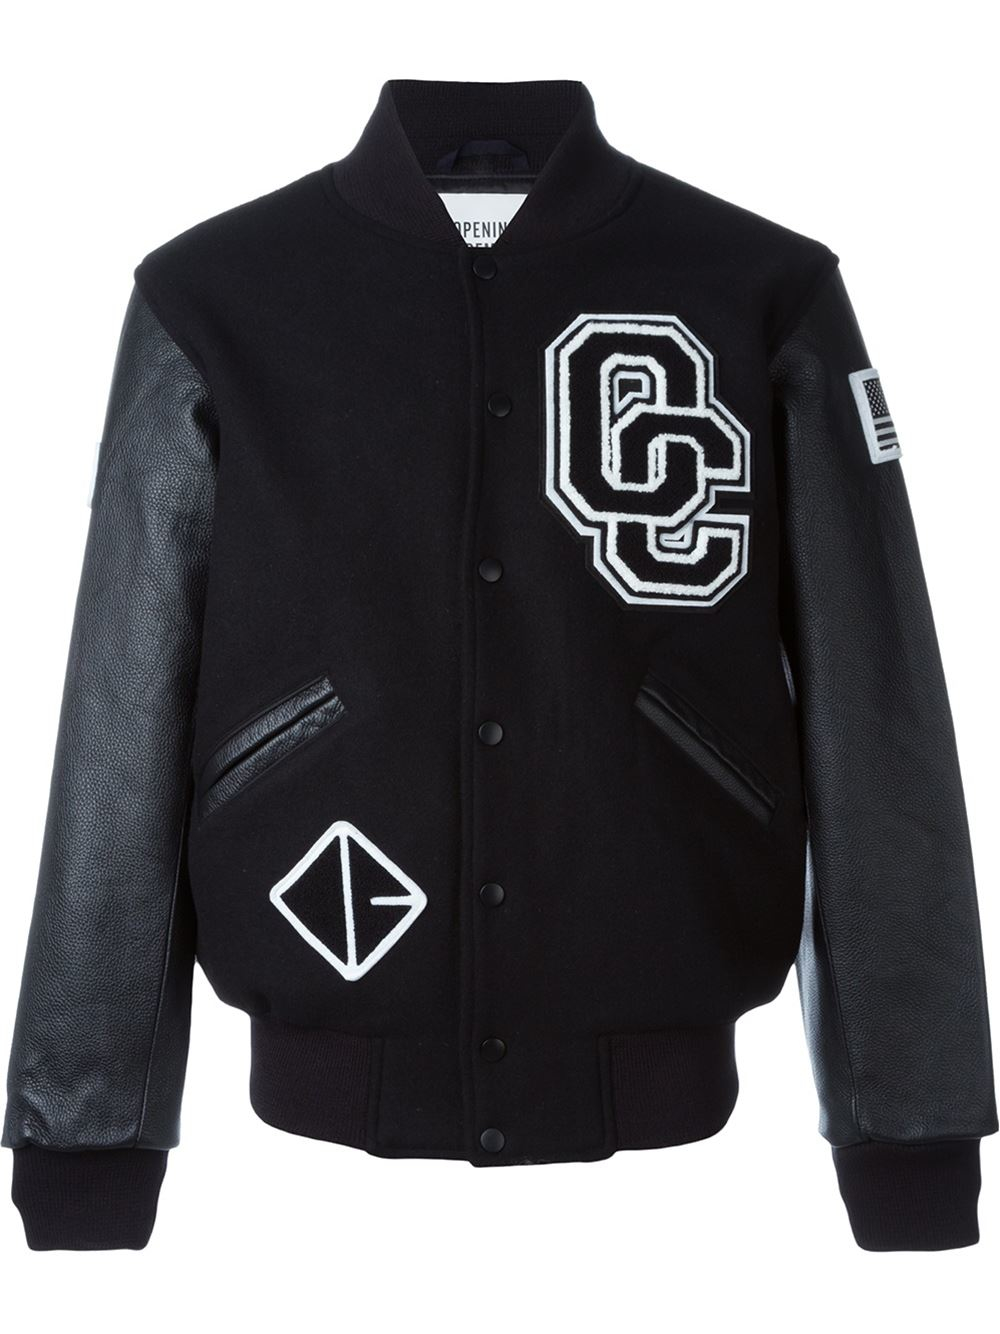 Lyst - Opening Ceremony Baseball Jacket In Black For Men